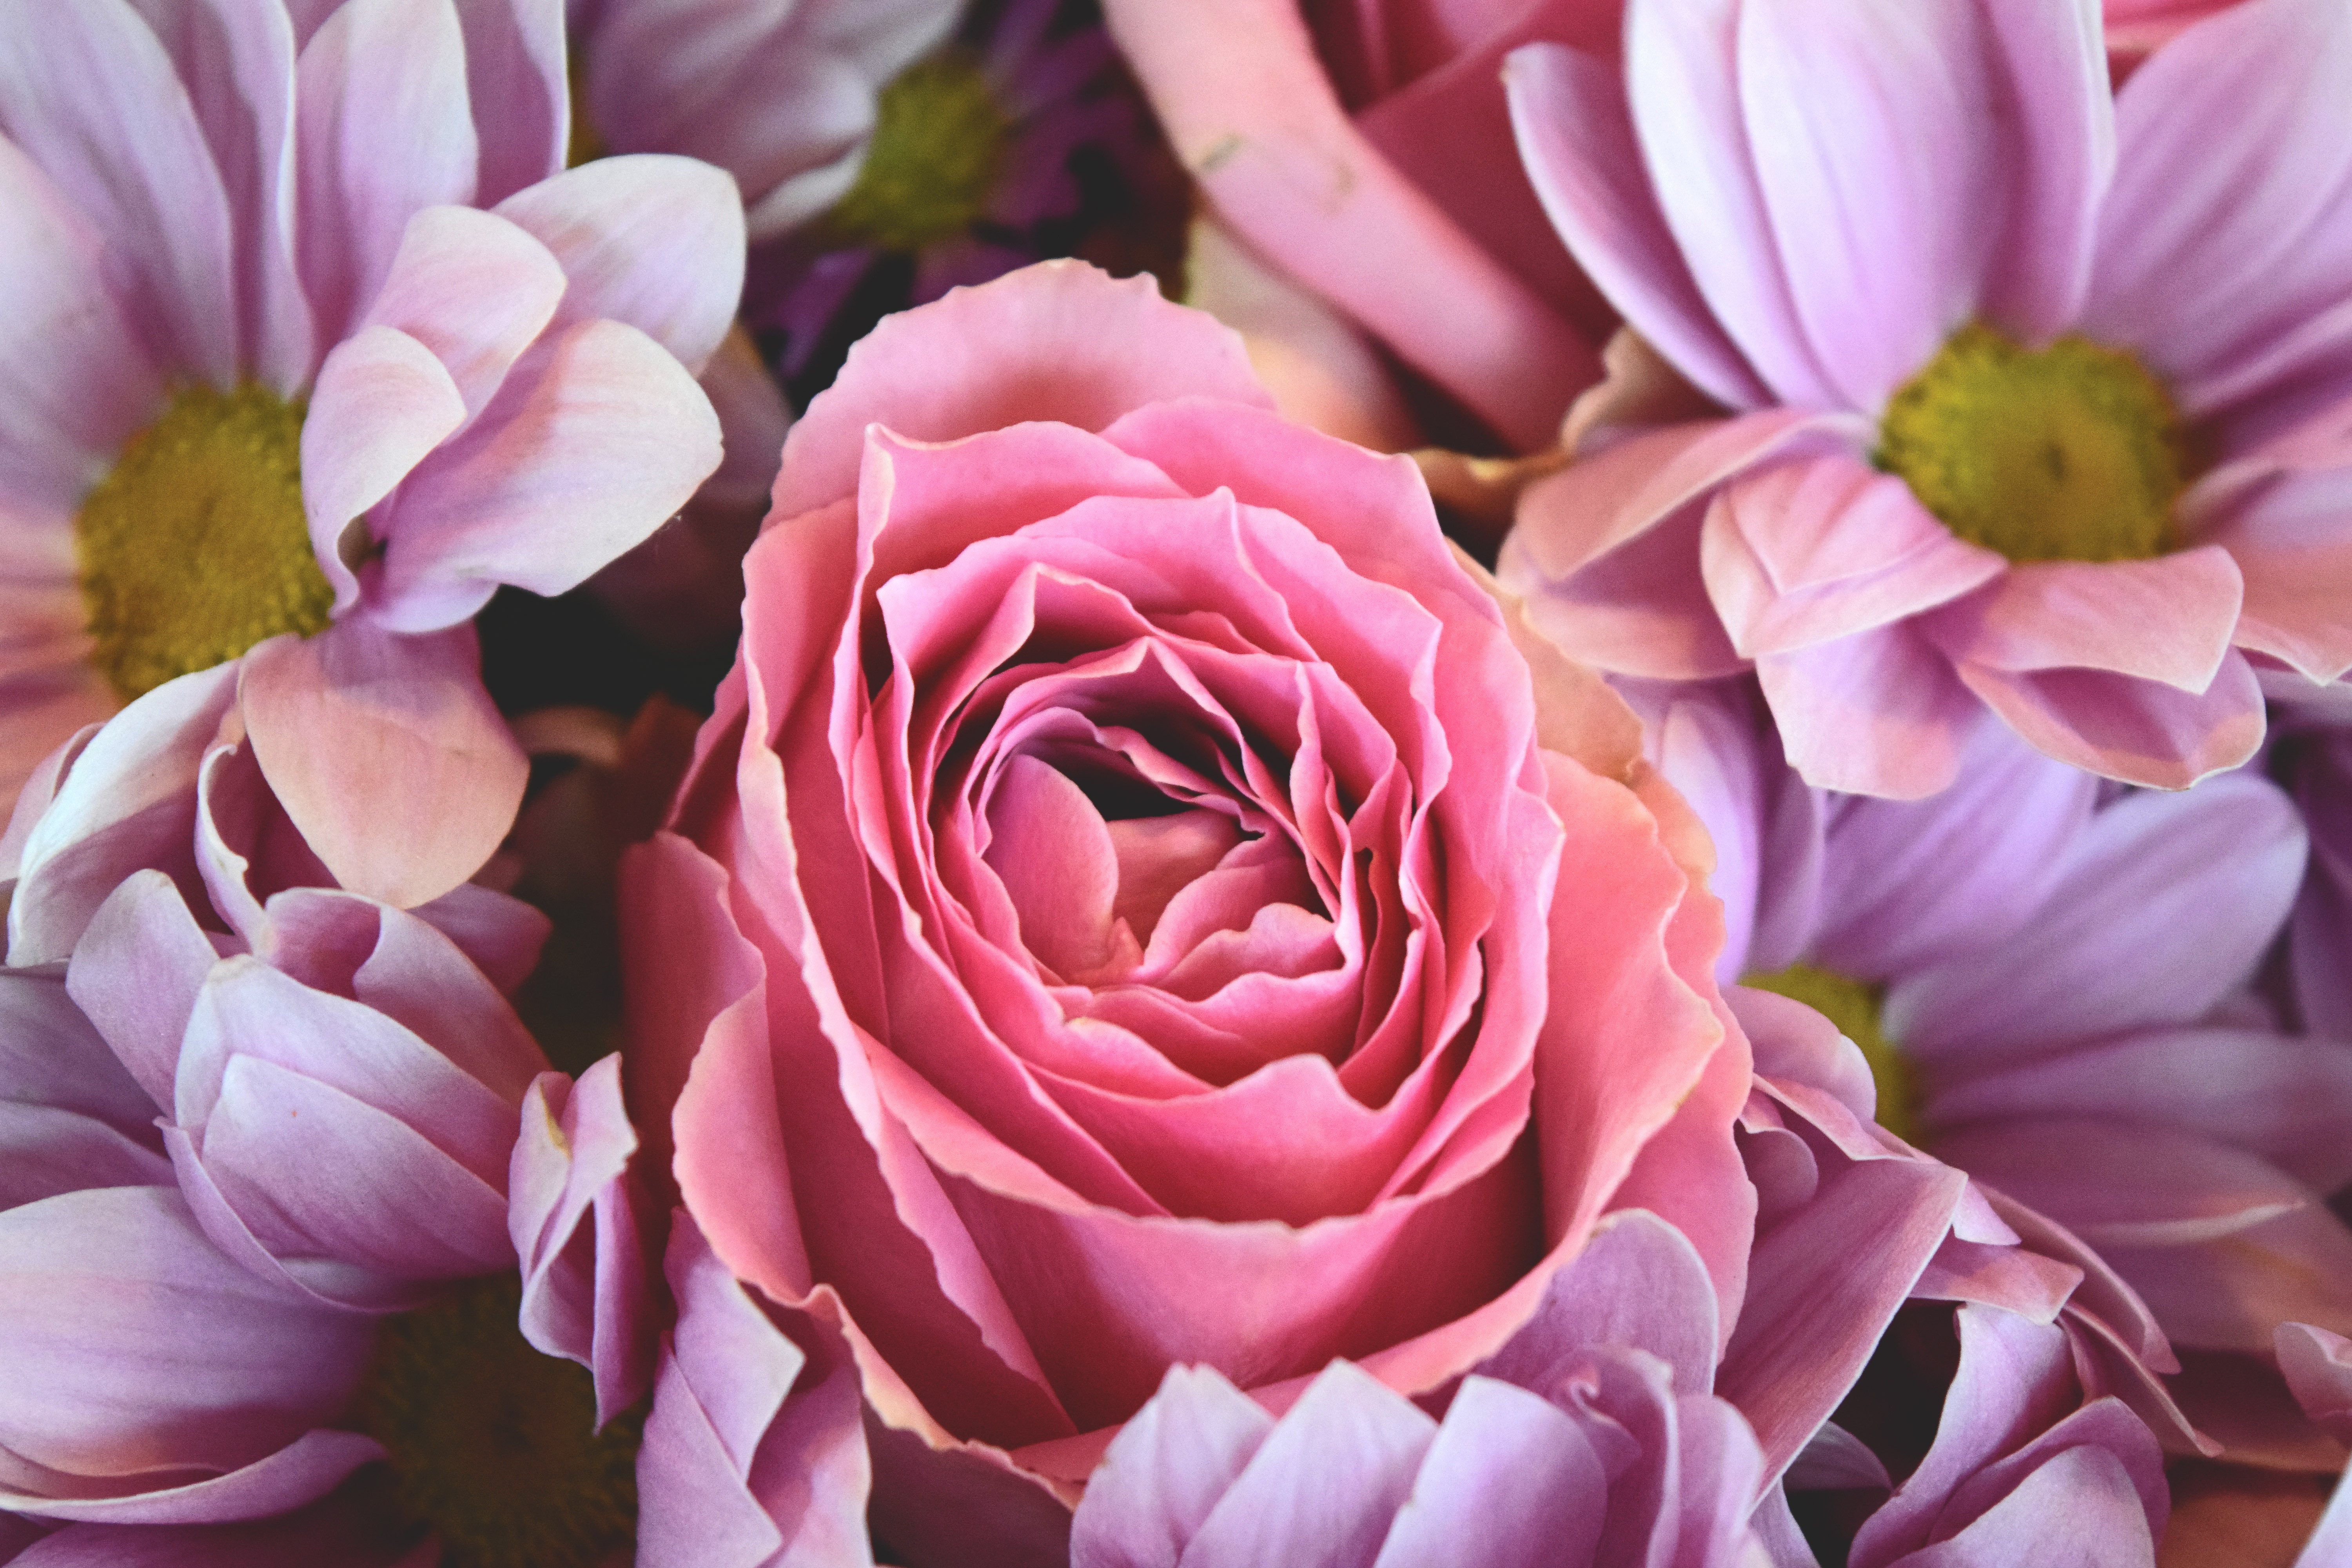 Free photos of flowers roses jpg Free stock photo of flowers, pink, roses jpg